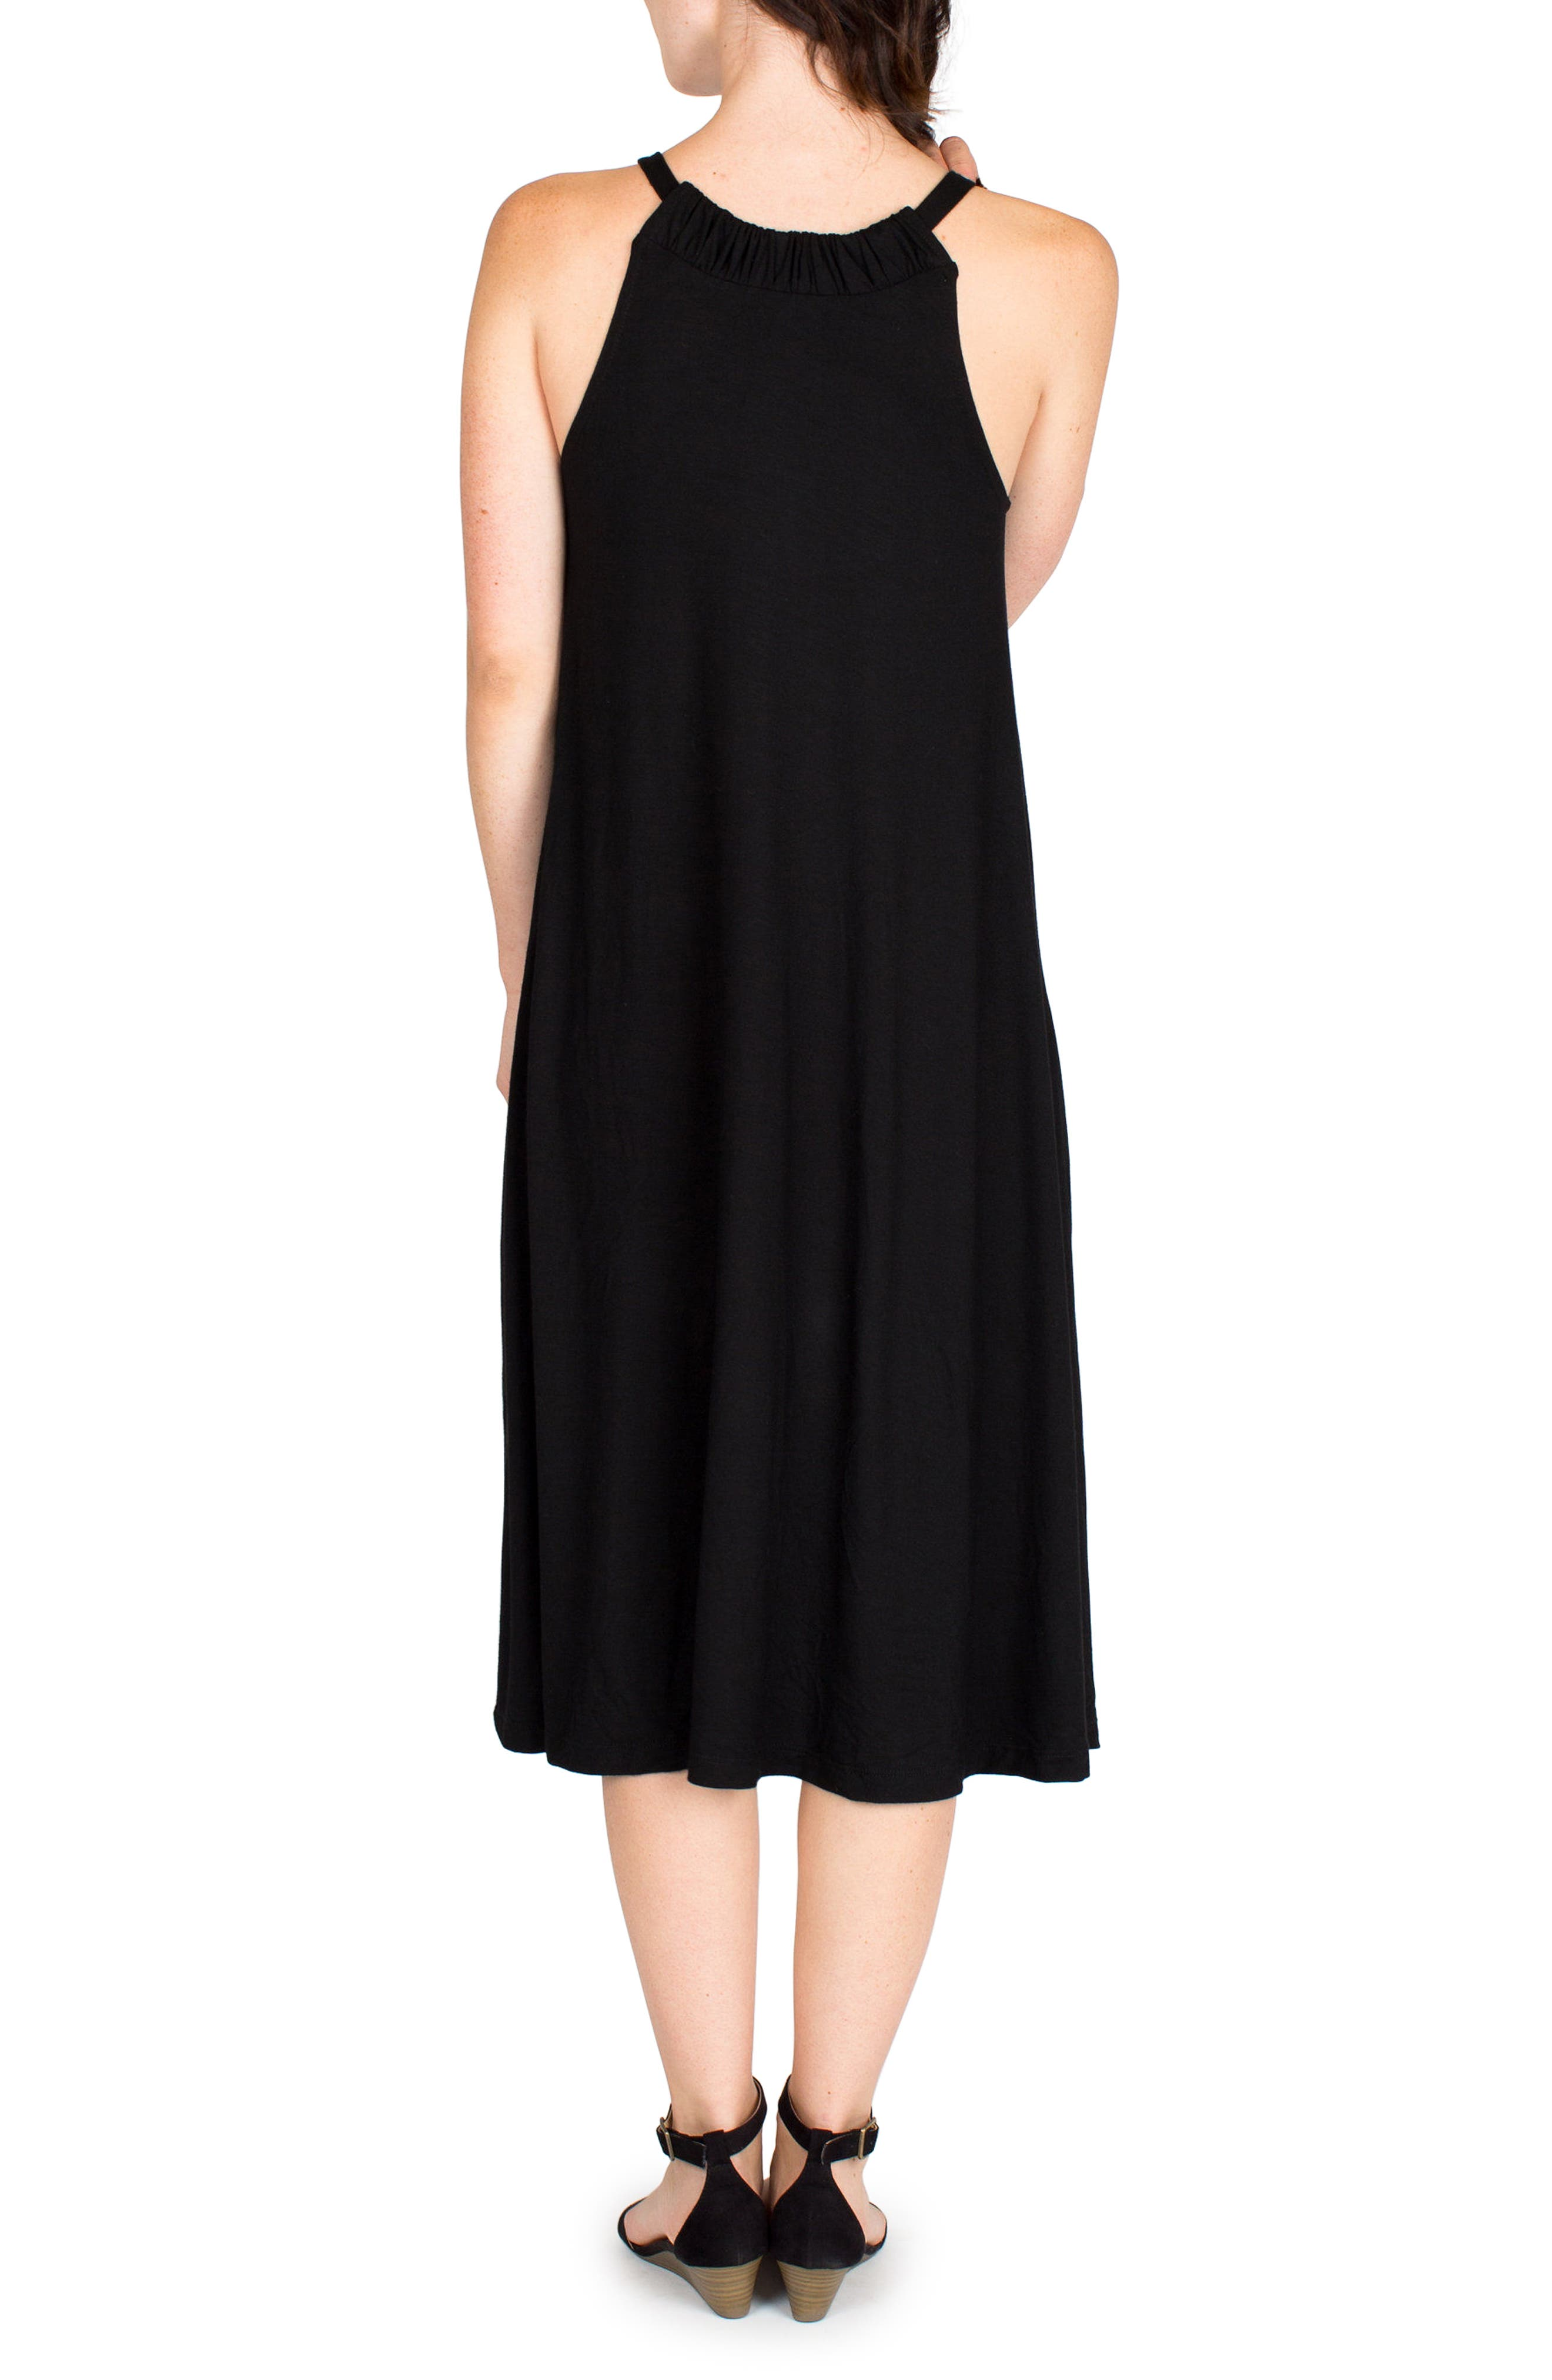 Nom Maternity Andrea Maternity Midi Dress, Black